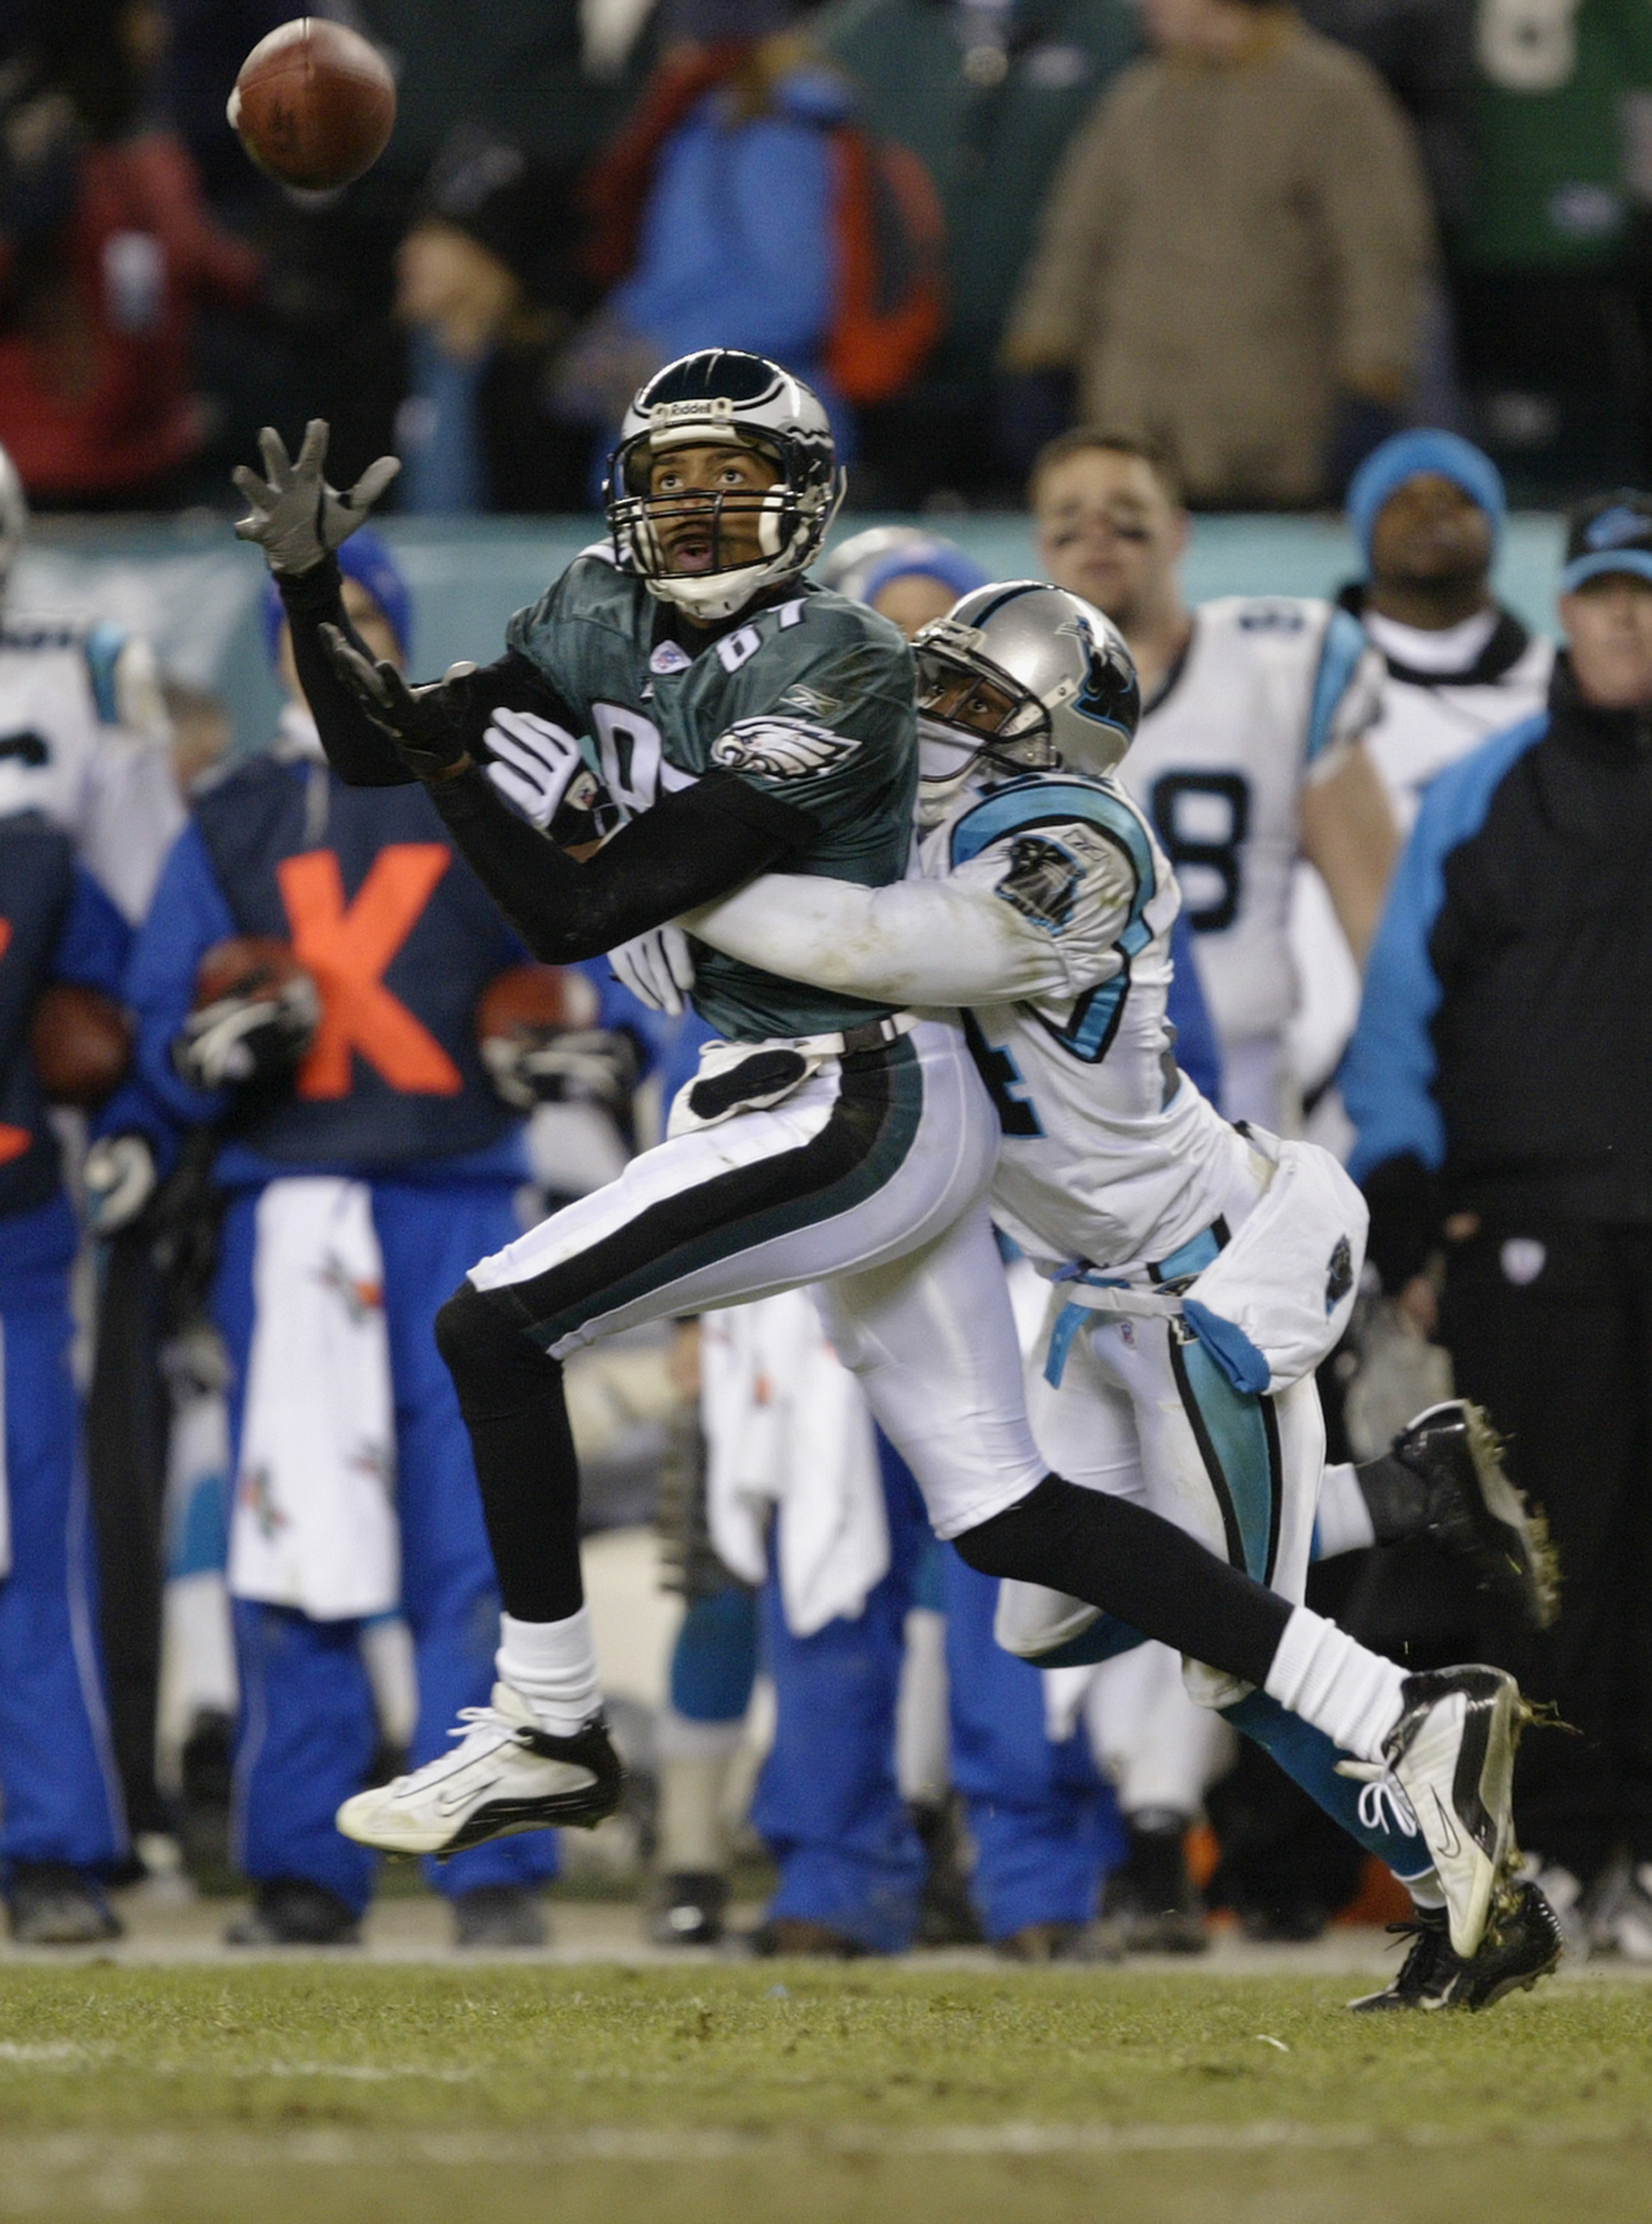 PHILADELPHIA - JANUARY 18:  Wide receiver Freddie Mitchell #84 of the Philadelphia Eagles goes out for a pass and is covered by Ricky Manning Jr. #24 of the Carolina Panthers in the NFC Championship game on January 18, 2004 at Lincoln Financial Field in P